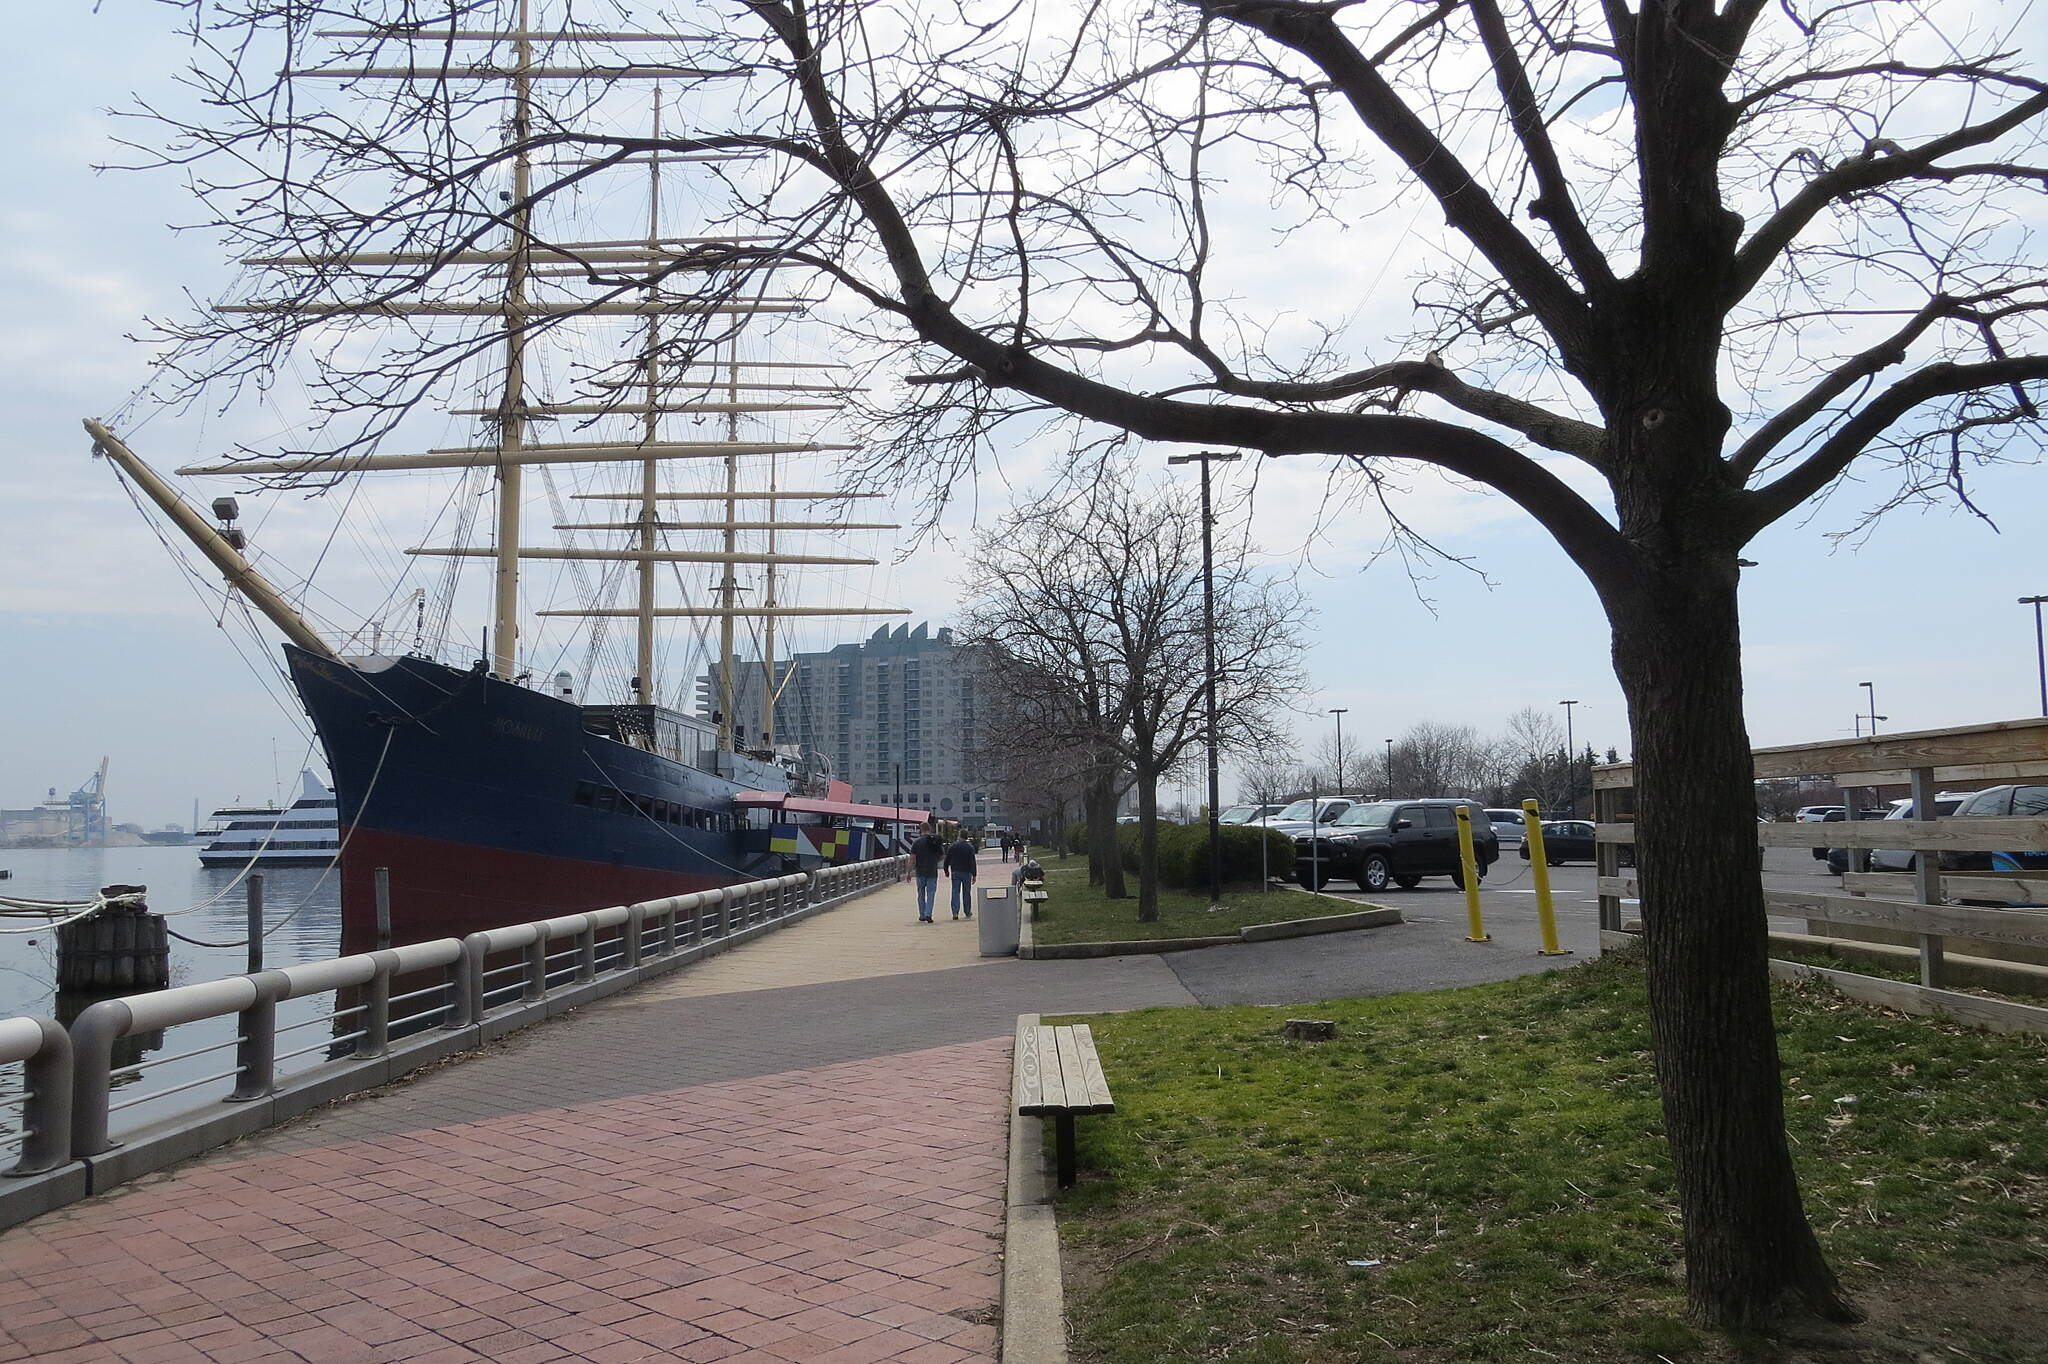 Delaware River Trail Cool pathway with ships docked right along side! This is the trail just south of Spruce Street Harbor Park.